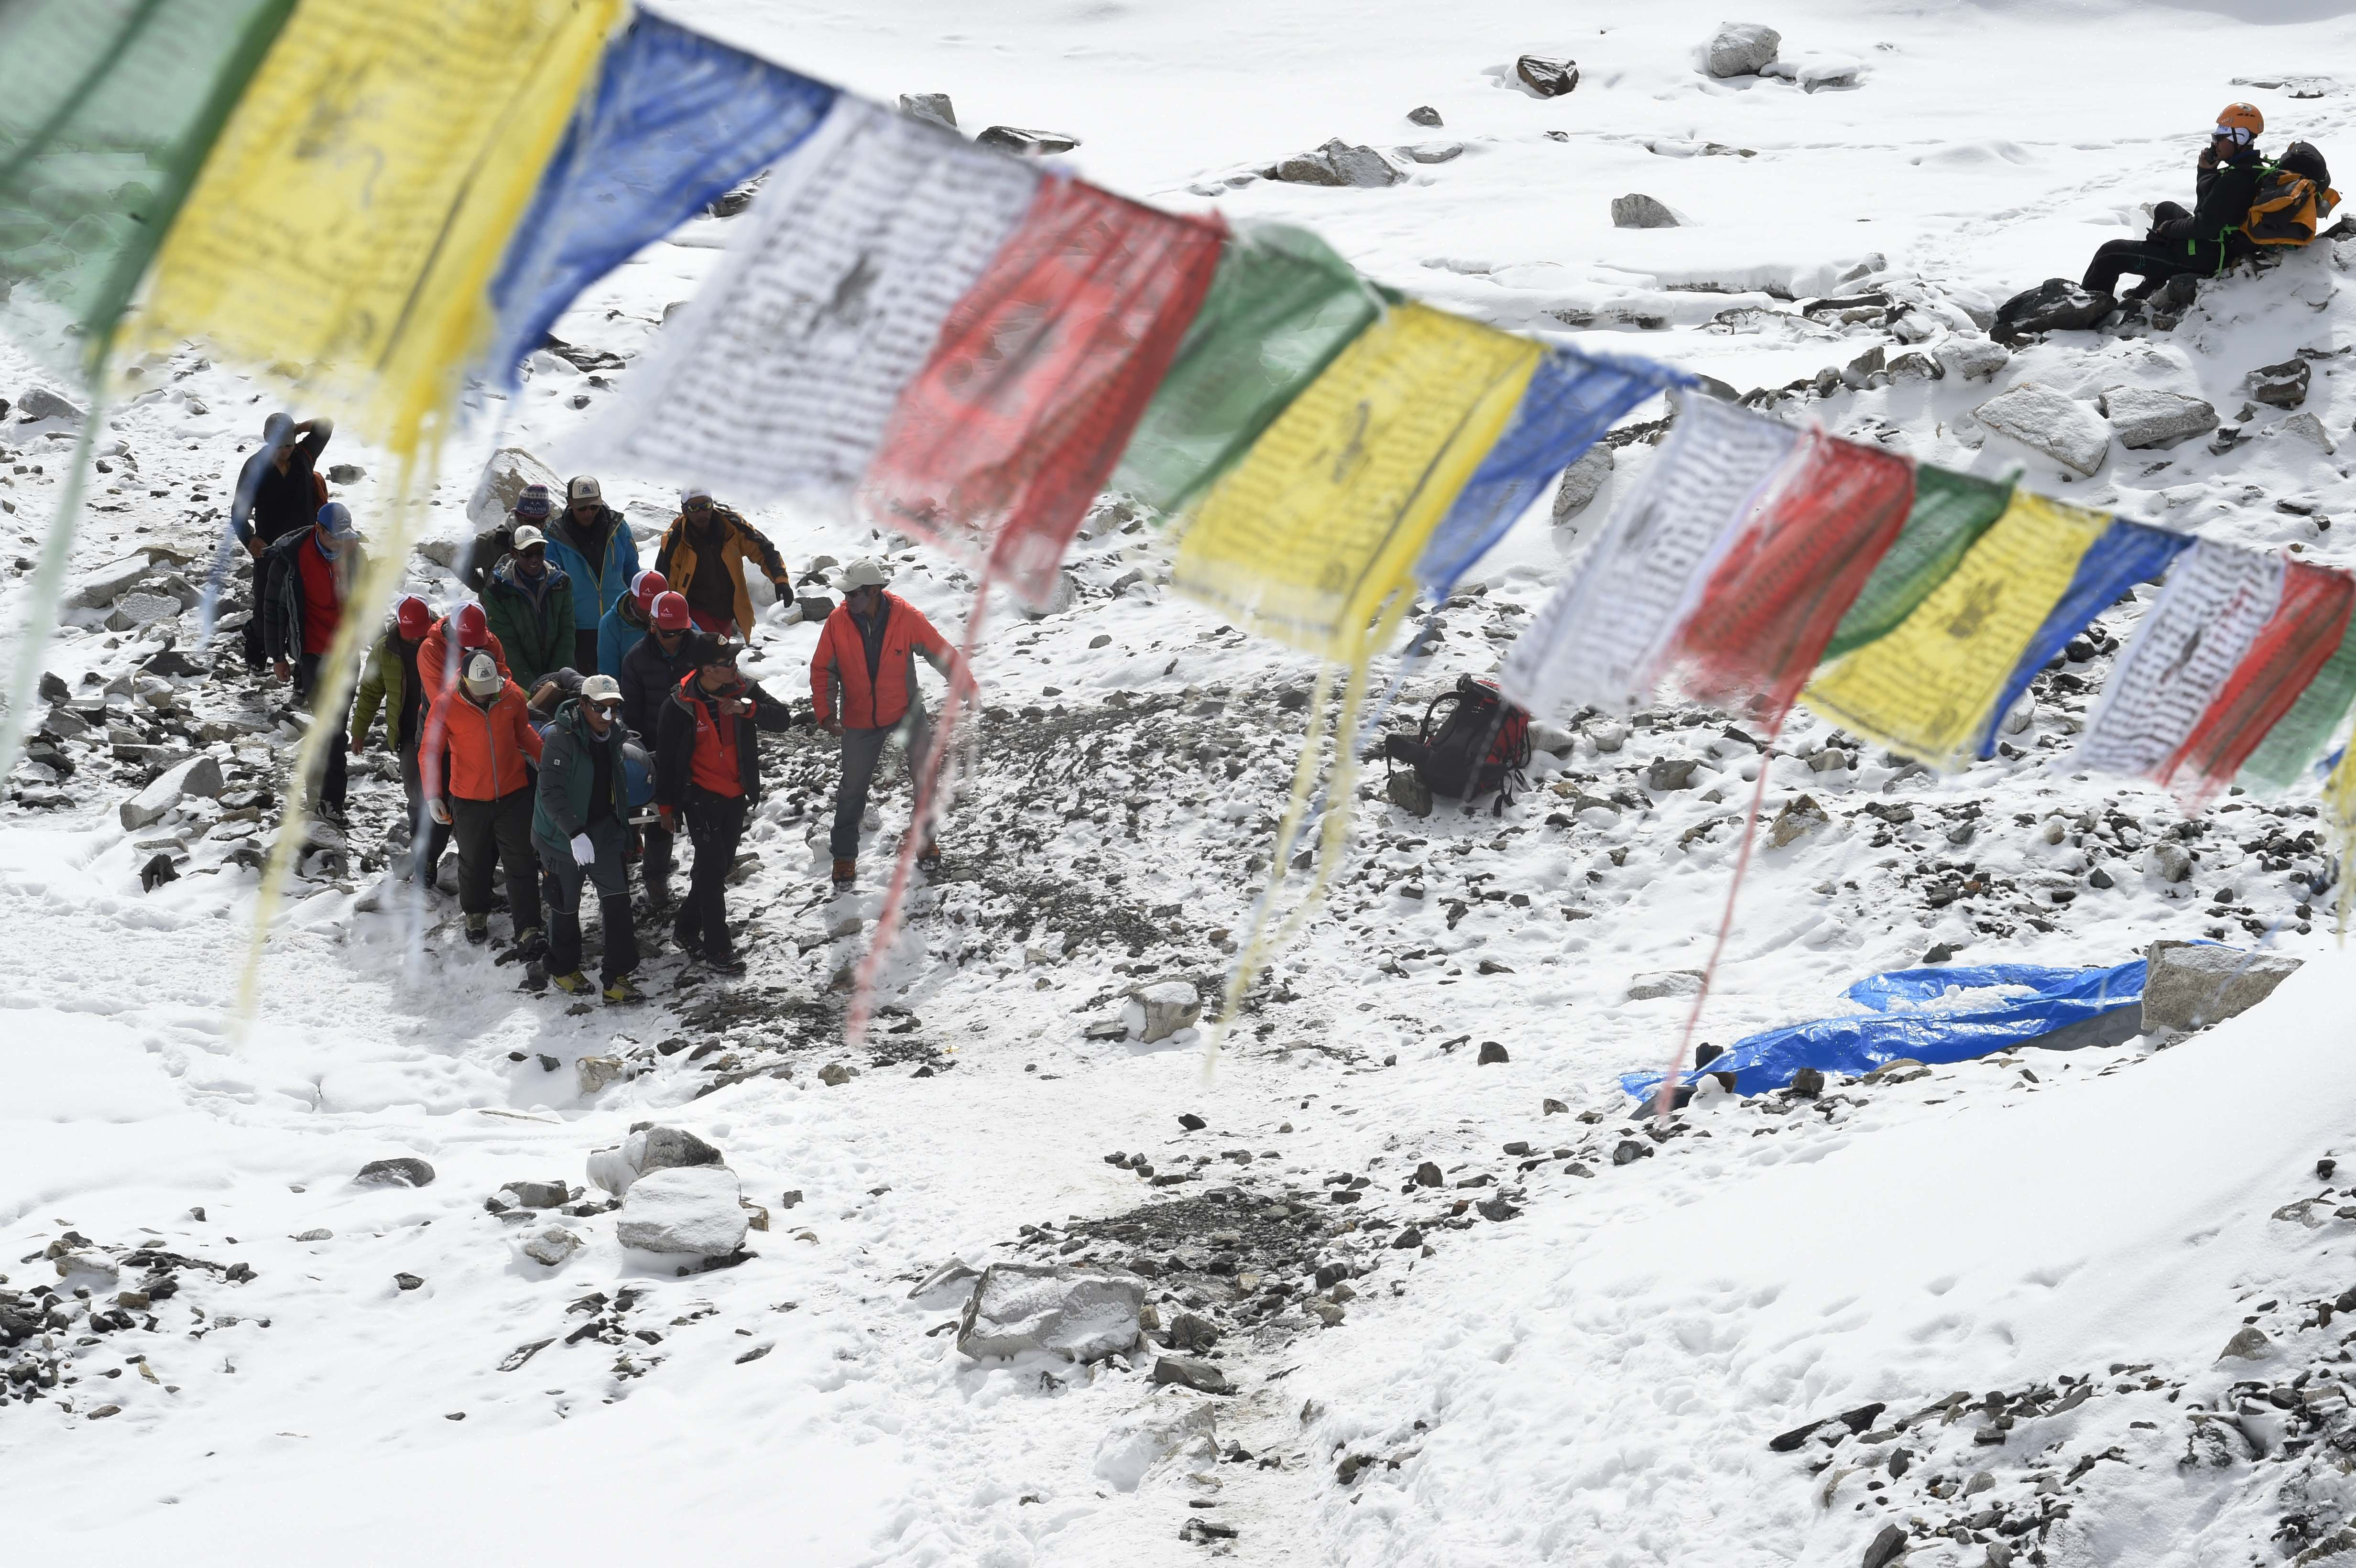 Rescue team personnel carry an injured person towards a waiting rescue helicopter at Everest Base Camp on April 26, 2015, a day after an avalanche triggered by an earthquake devastated the camp.  Photo by Roberto Schmidt/AFP/Getty Images.